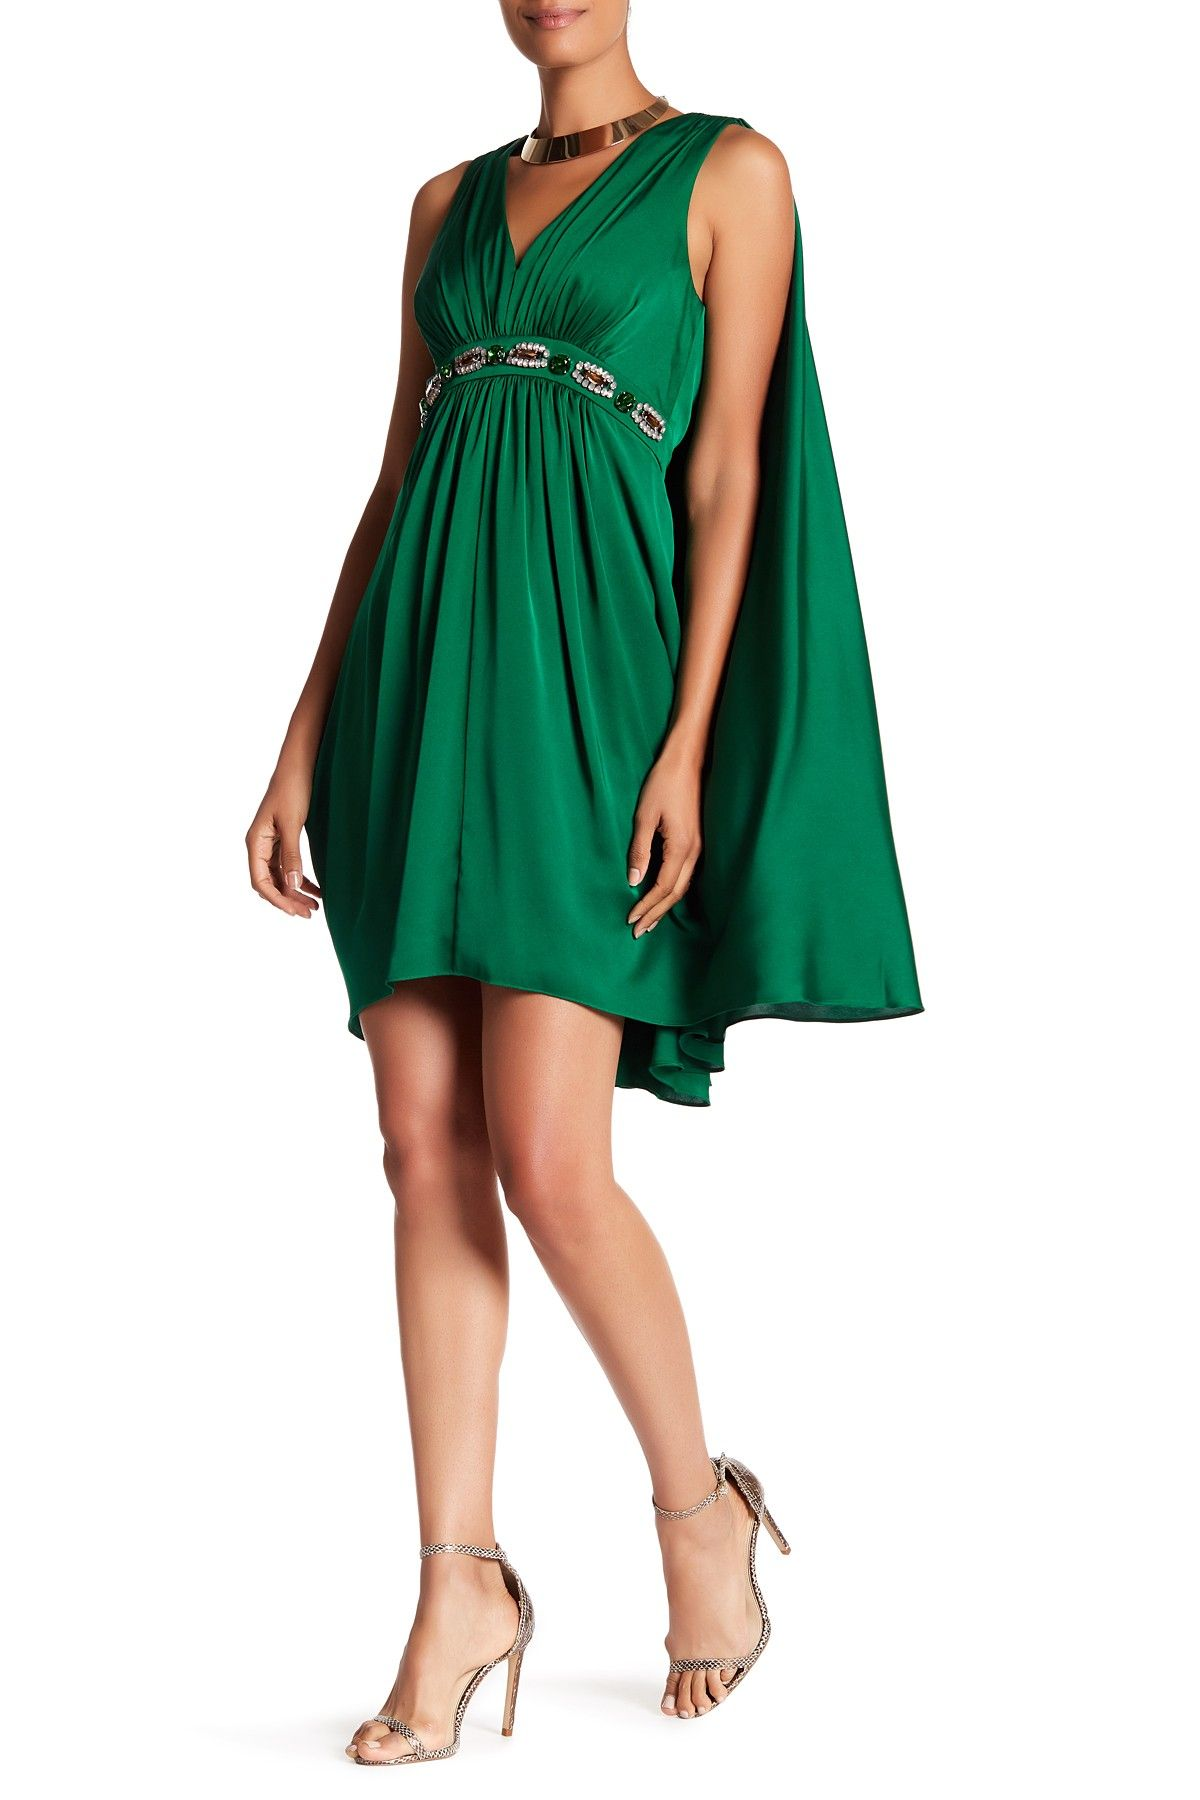 Emerald green dress for women  Trina Turk  Prestige Embellished Cape Sleeve Dress  Products